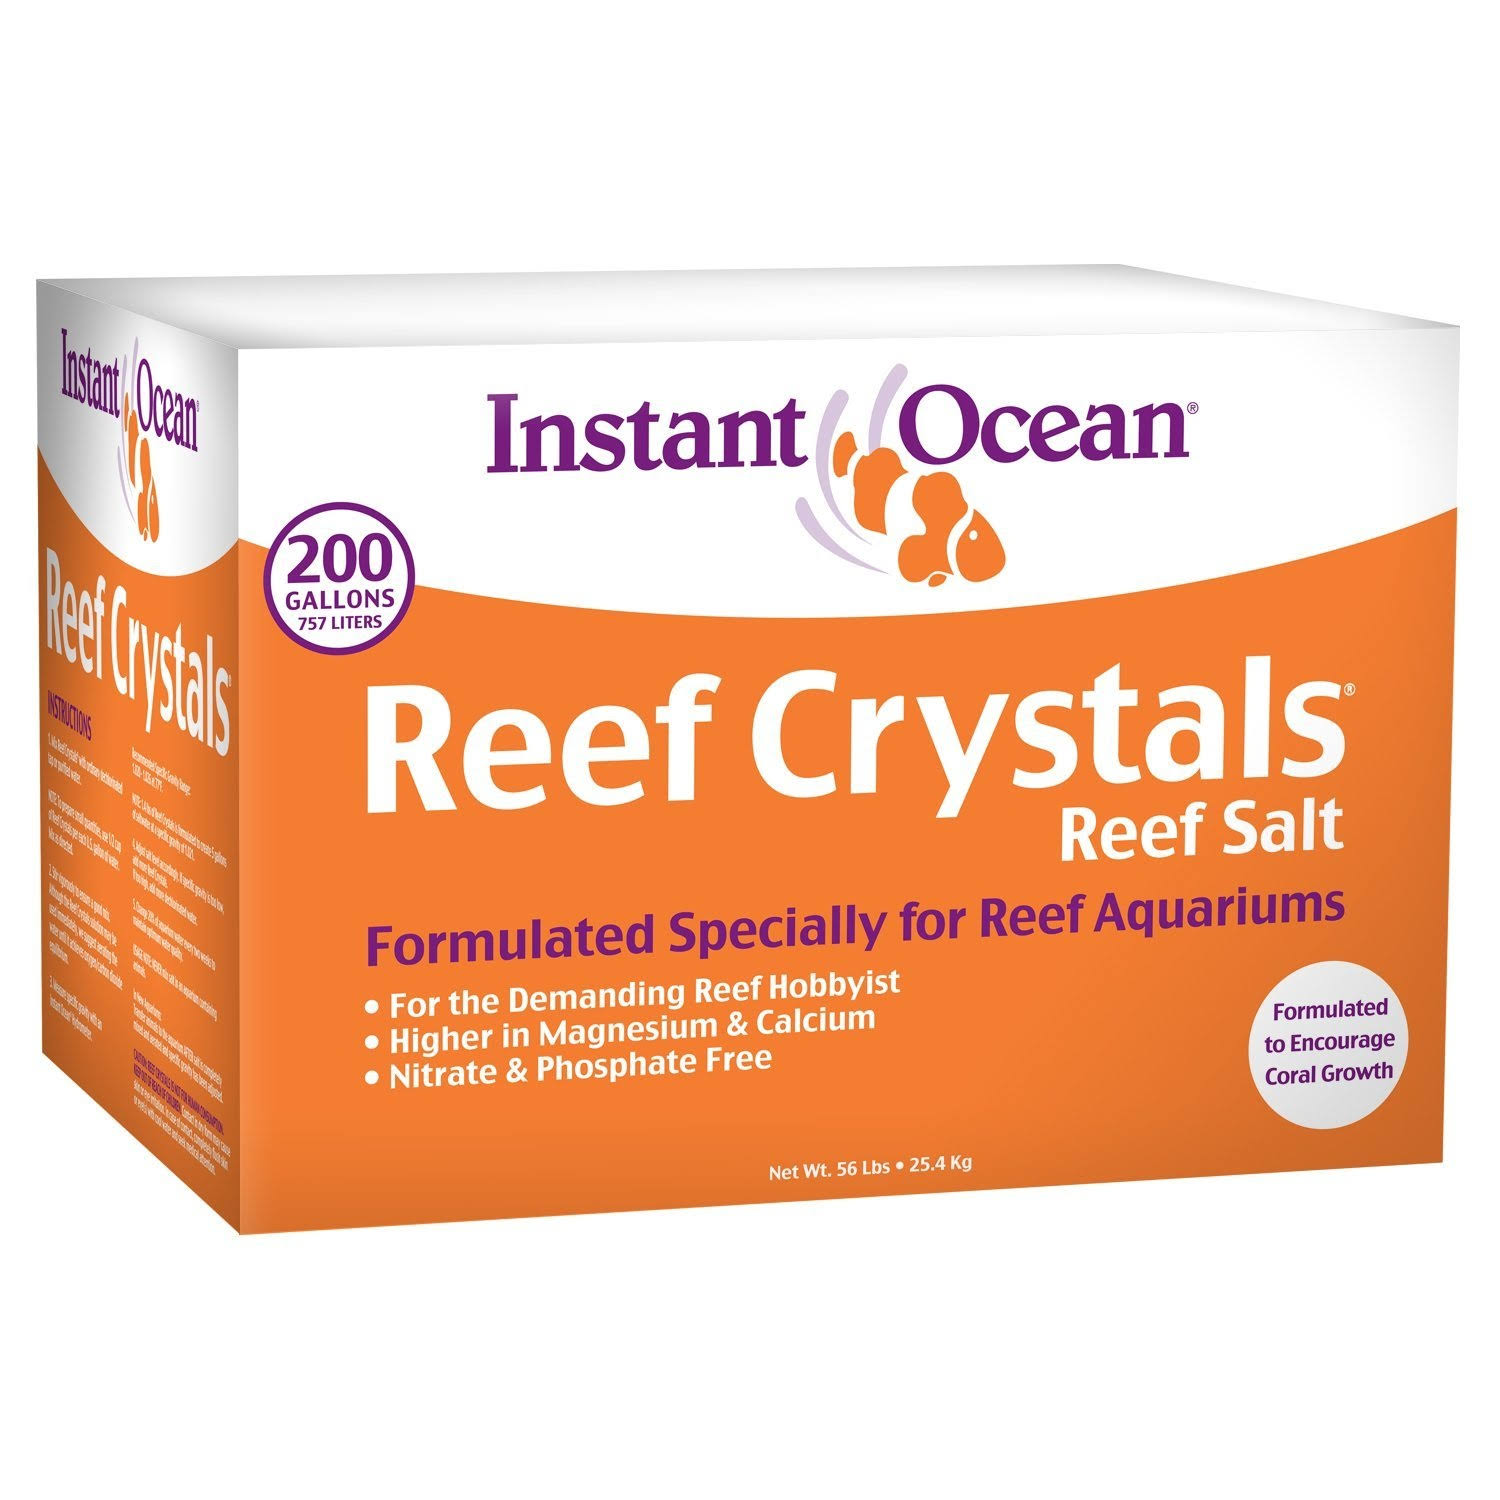 Instant Ocean Reef Crystal Reef Salt